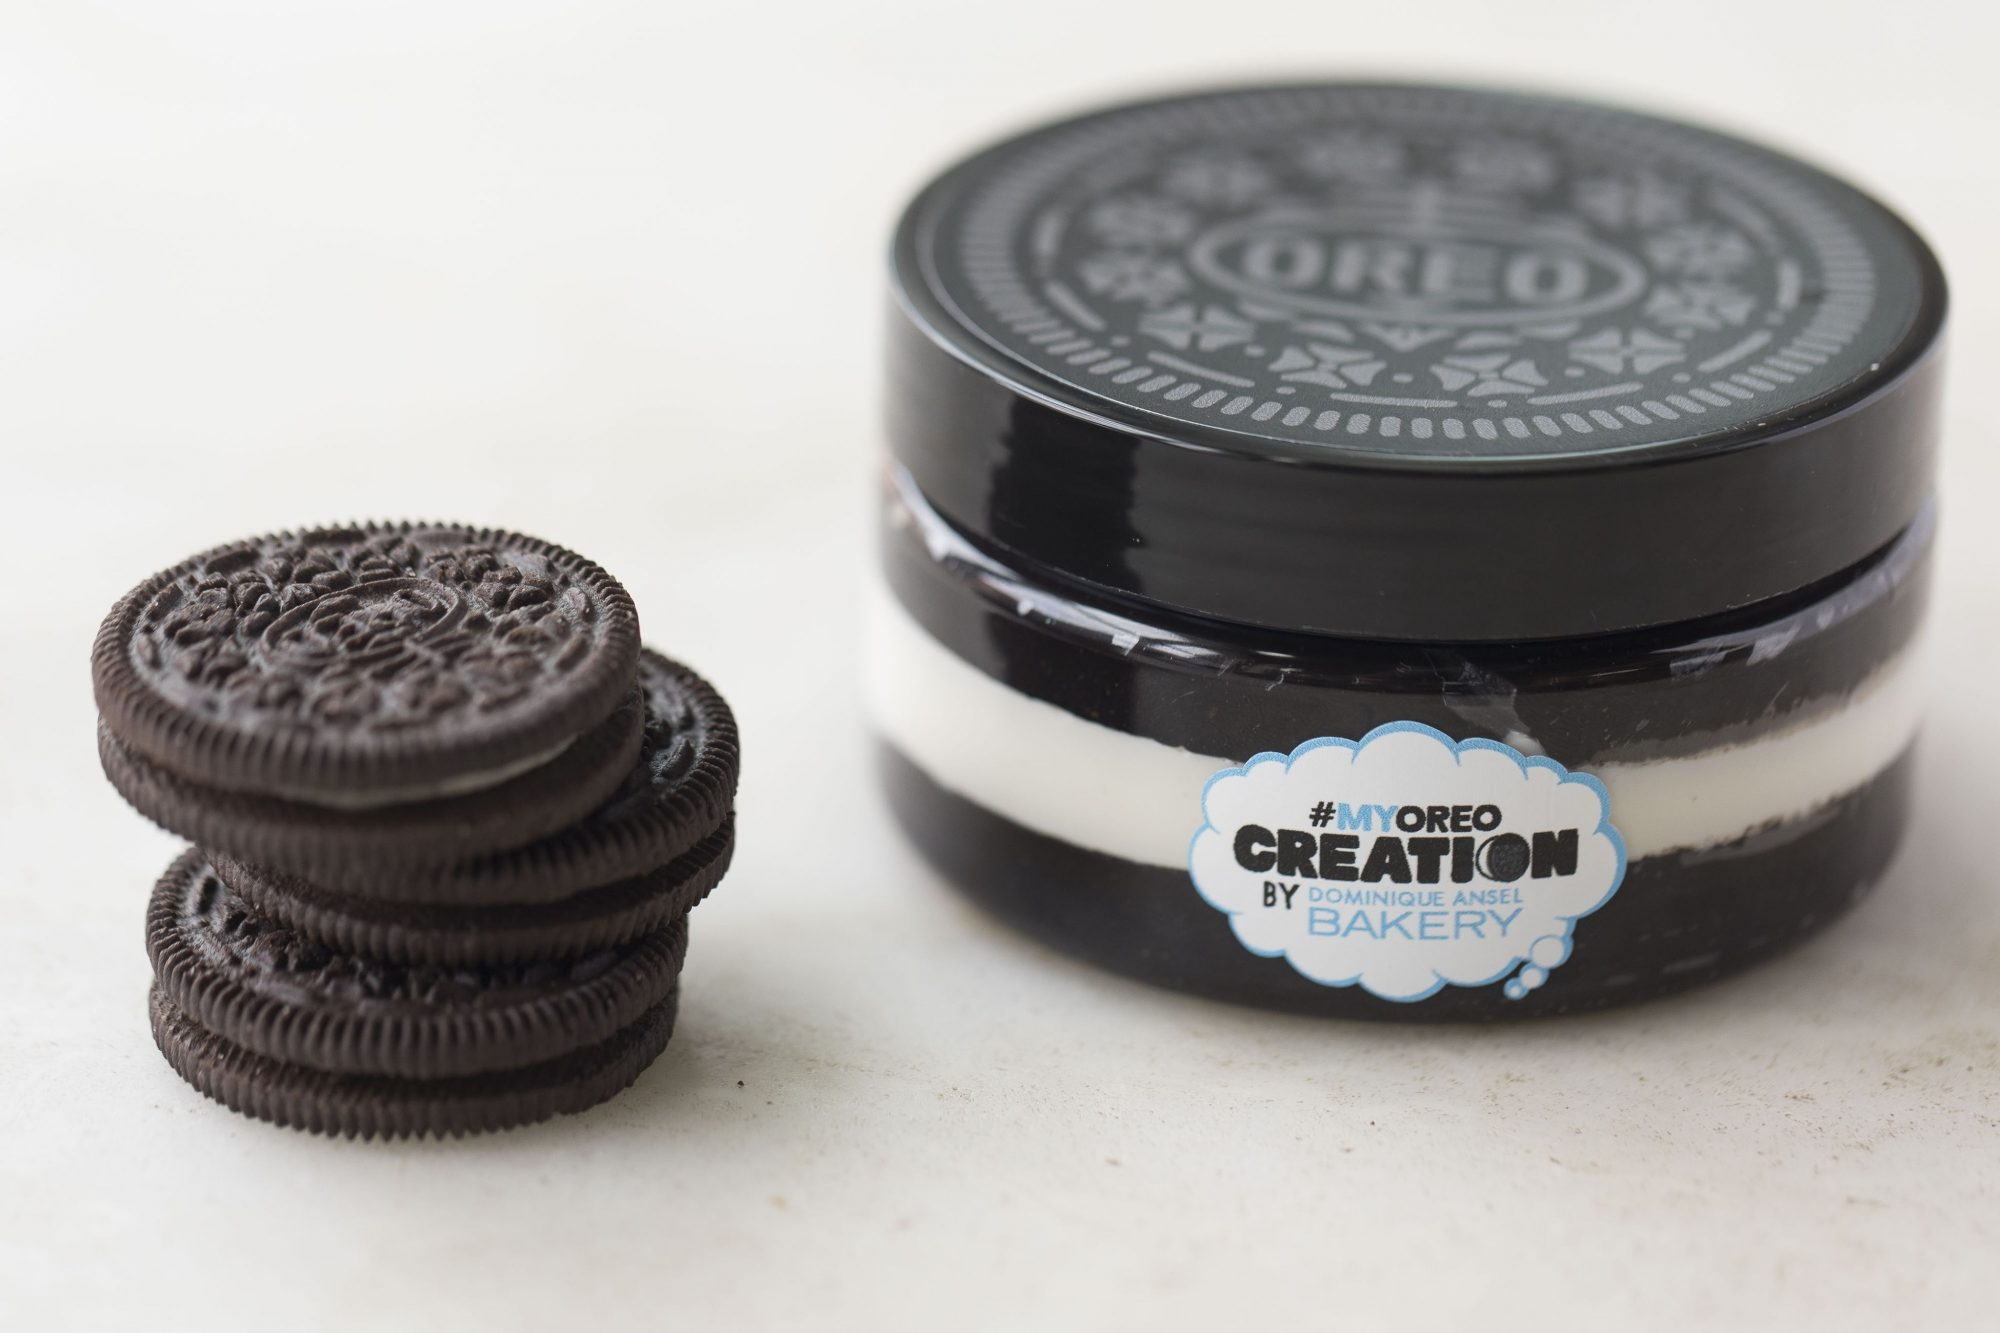 EC: How to Get Free Oreo Cookie Spread